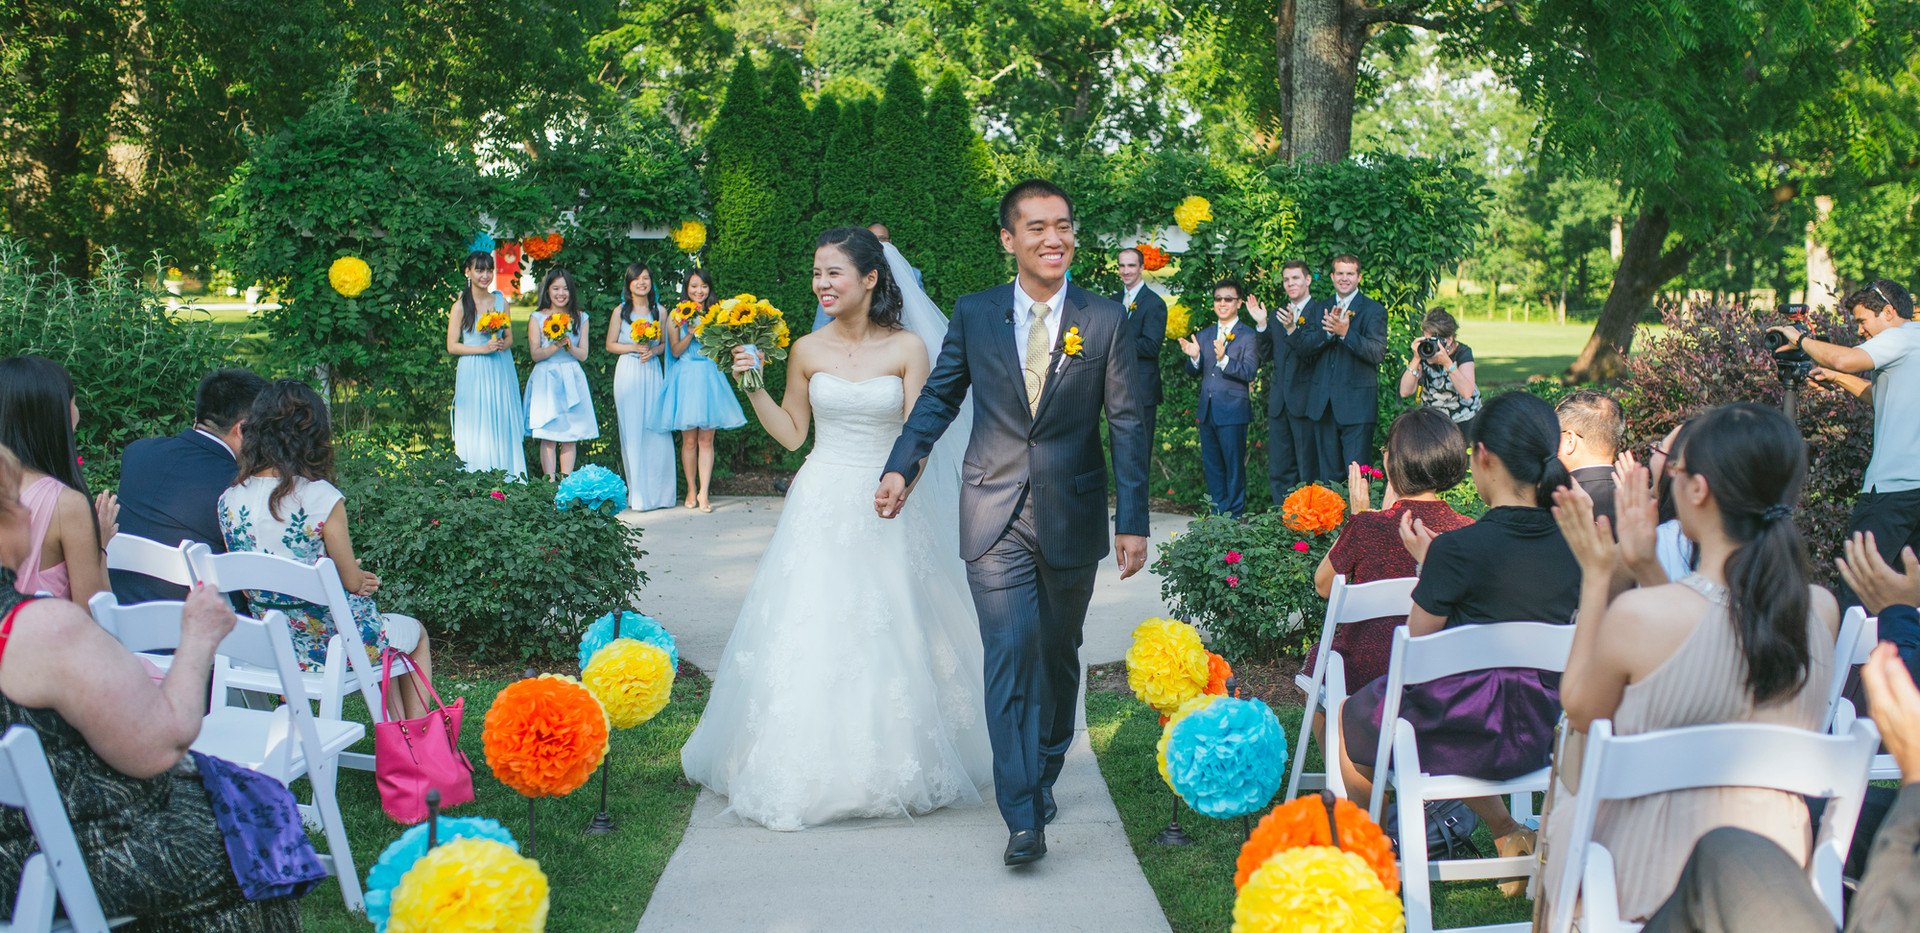 Colorful Ceremony Decor